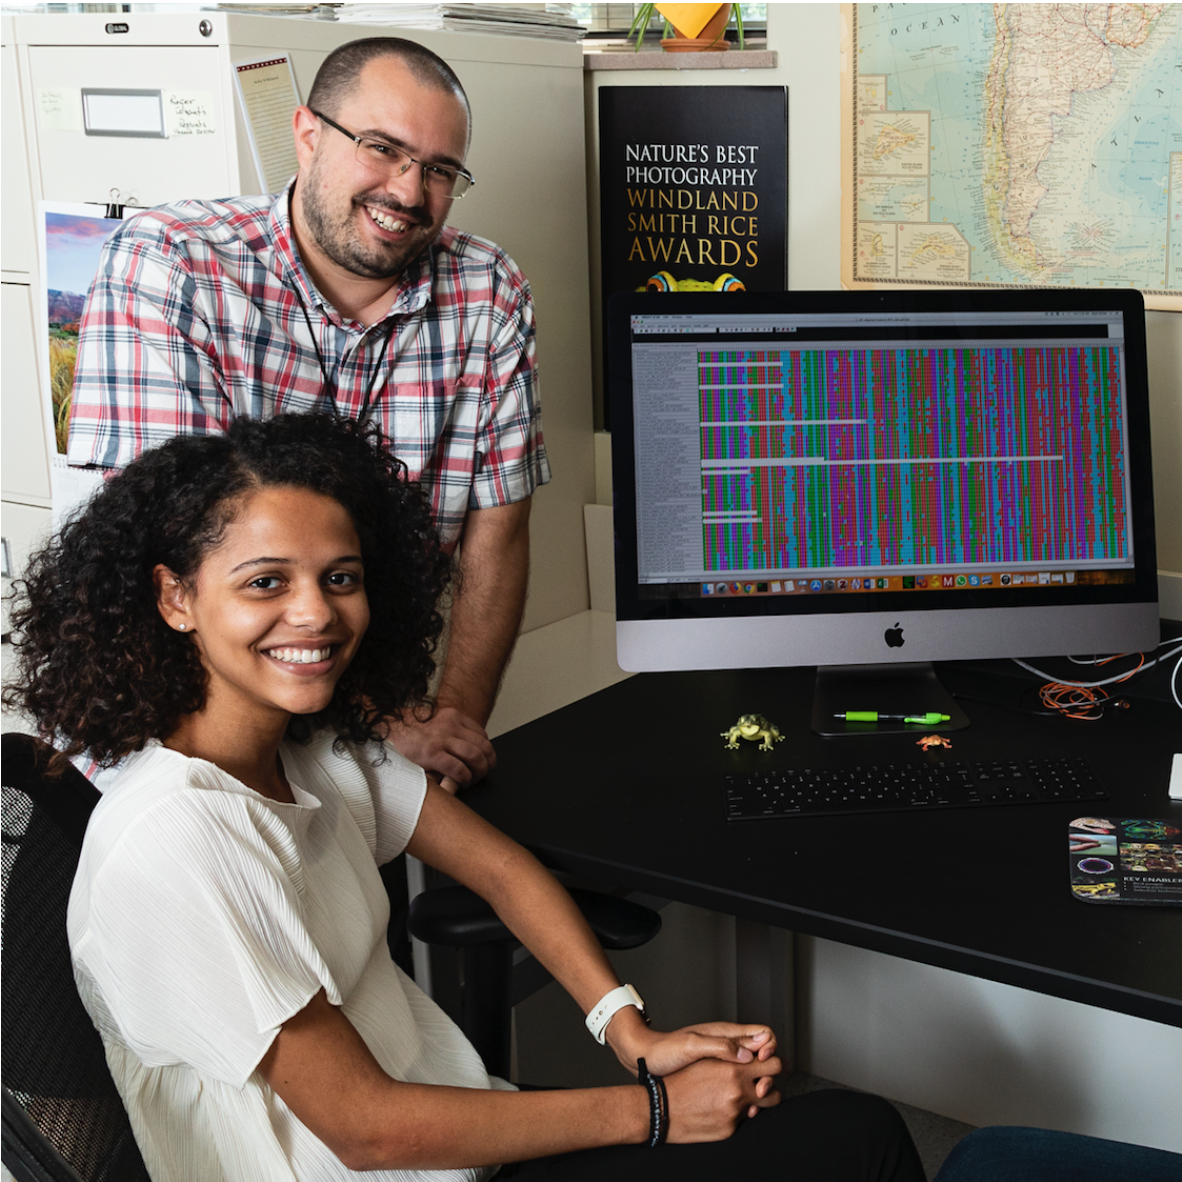 Maya Woolfolk - B.A. student Biology, University of KentuckyMaya was an intern in the NSF-REU Natural History Research Experience program at the National Museum of Natural History in the Bell Lab for summer 2018. She worked with postdoc Dr. Ryan Schott on molecular evolution of vision genes in frogs.